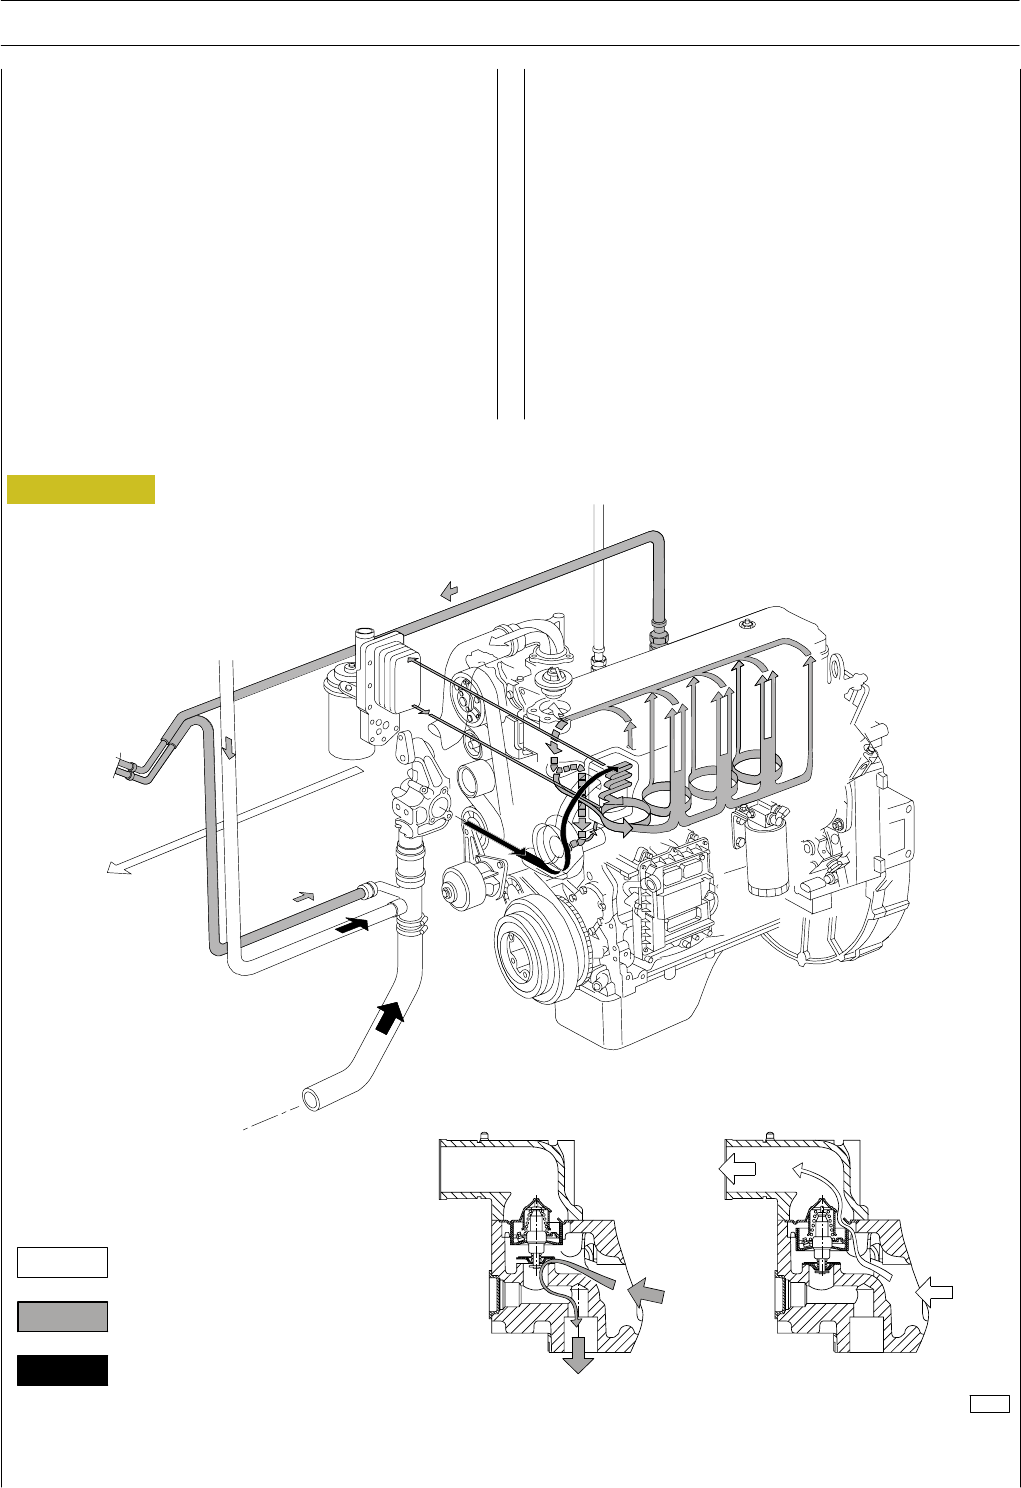 copertina fuif511 27d repair manual n45 and n67 ent tier3 p2d32n003e Dayton Bench Grinder Wiring cooling system